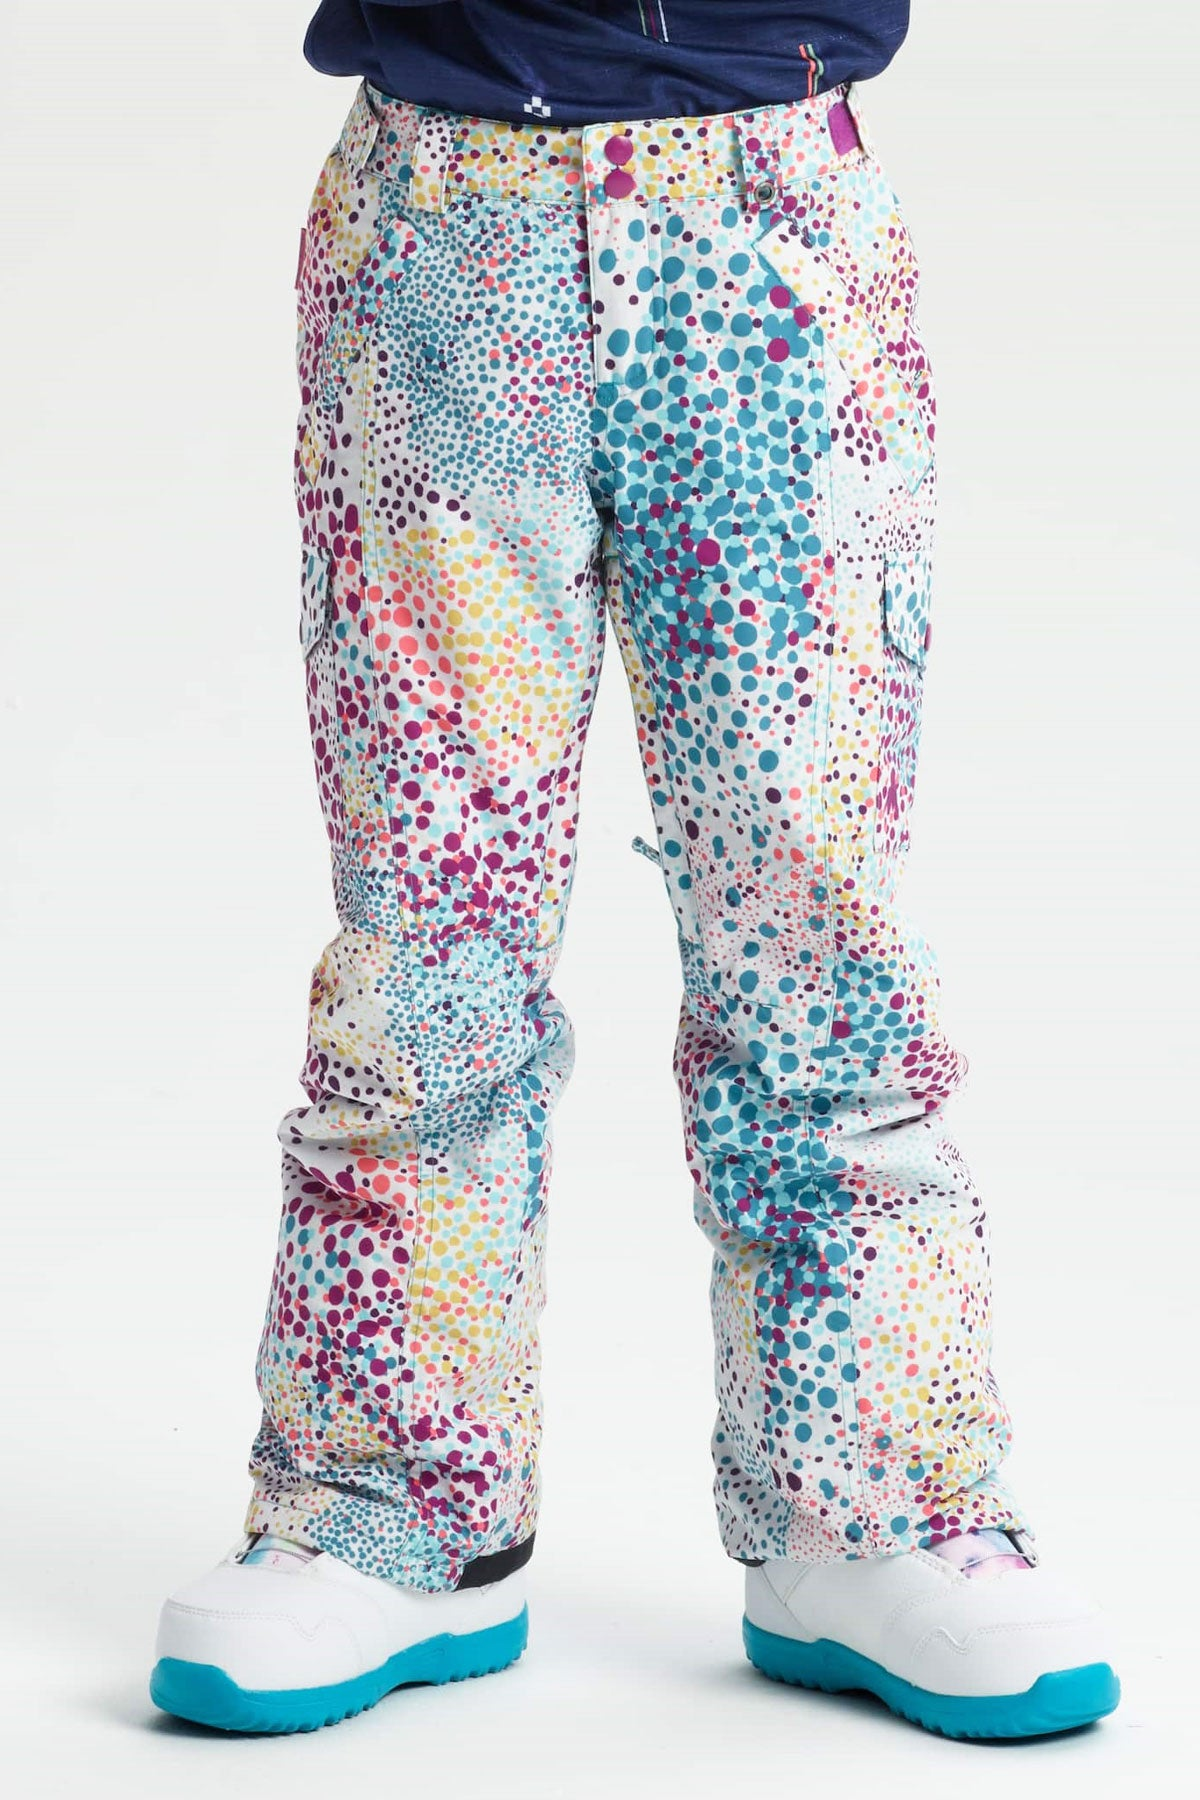 Burton Girls Elite Cargo Pant - Stout White Dots